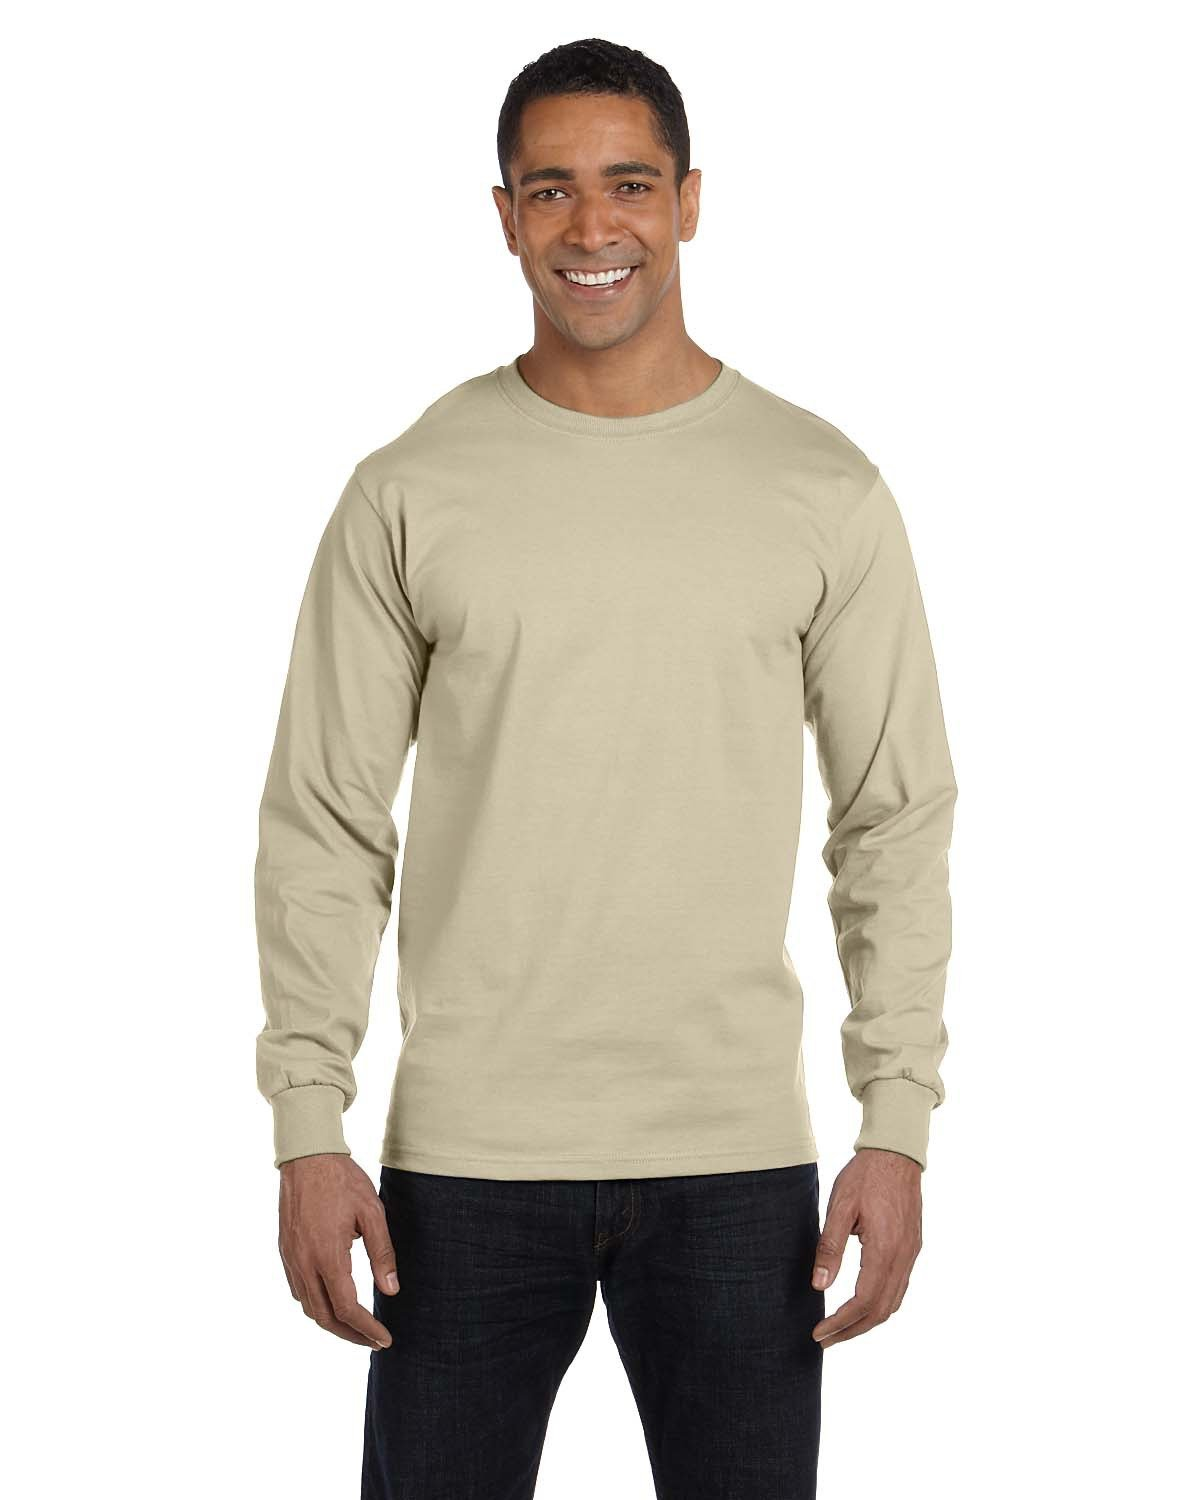 Hanes Adult Long-Sleeve Beefy-T® SAND